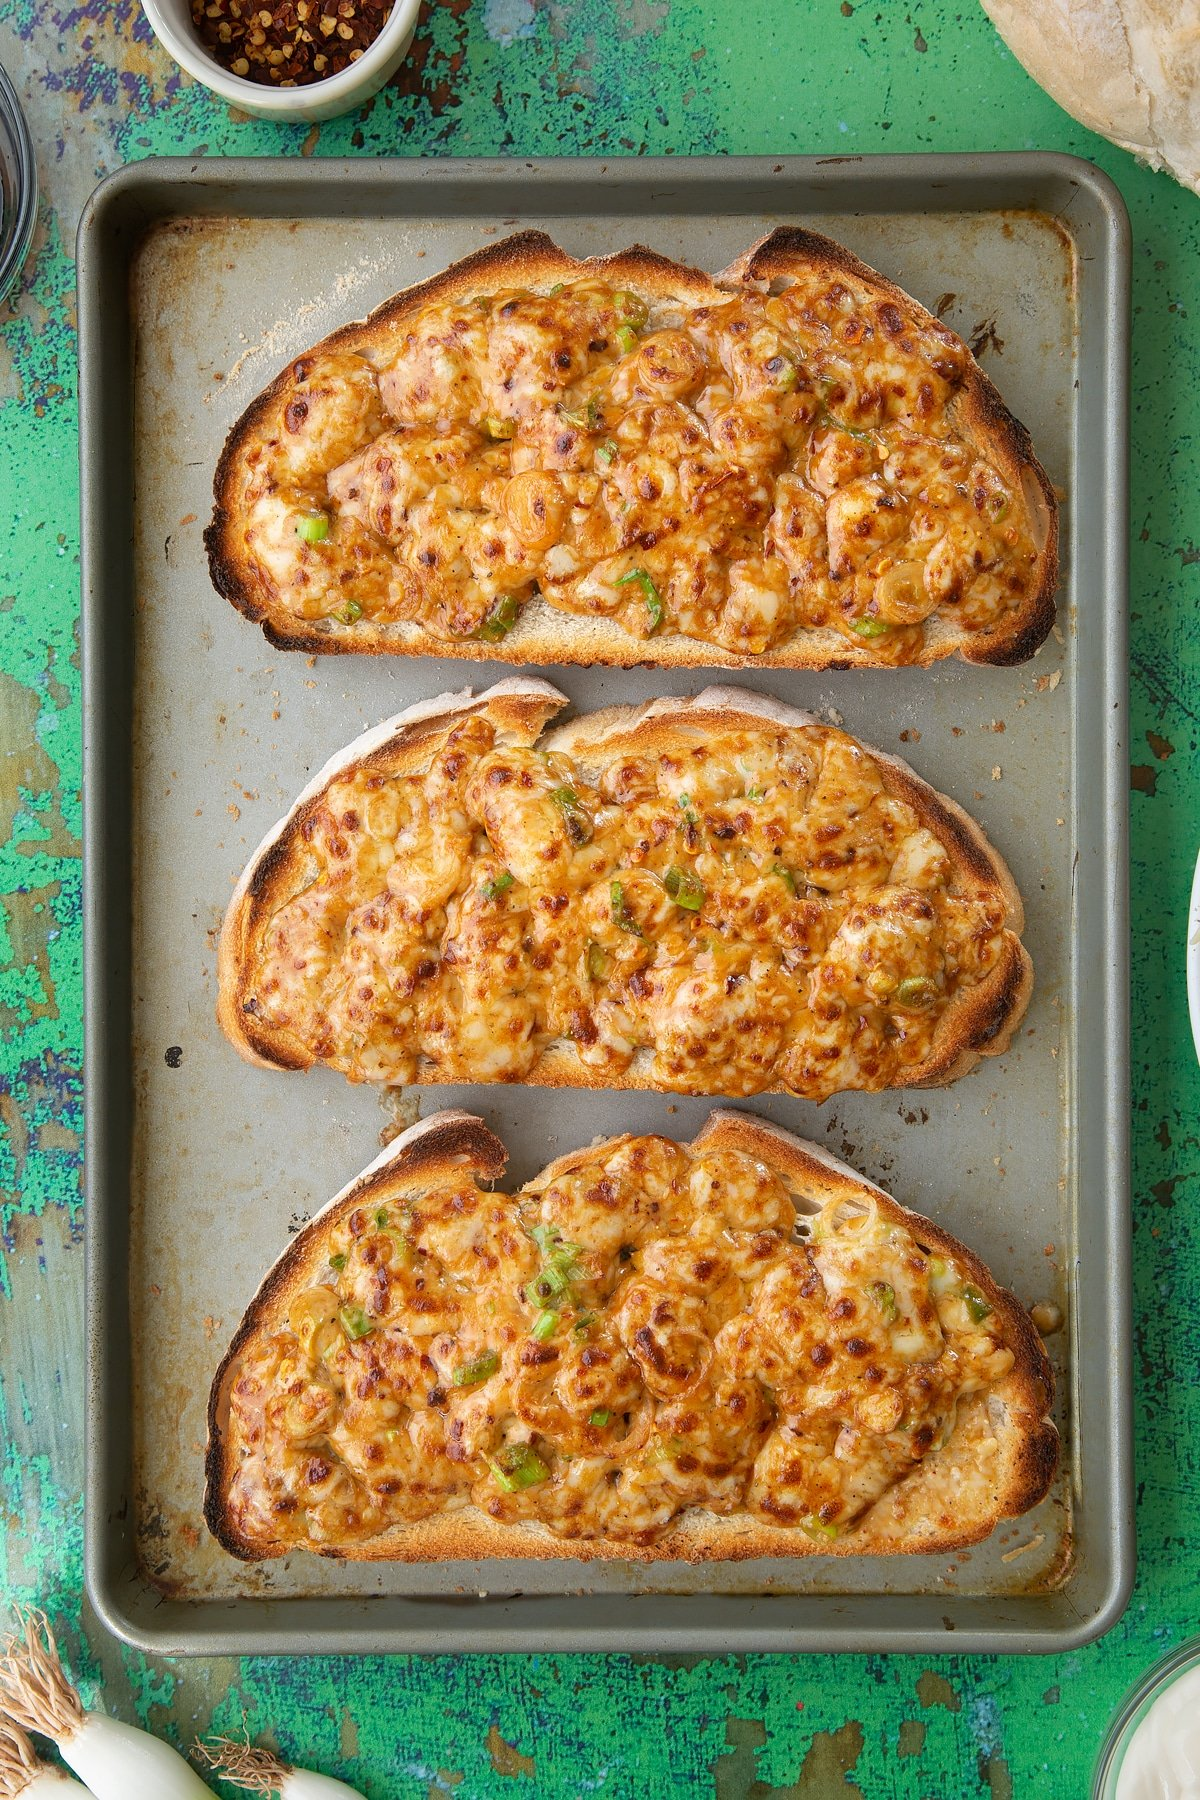 Three large slices of chilli cheese toast on a baking tray. Ingredients to make chilli cheese toast surround the tray.